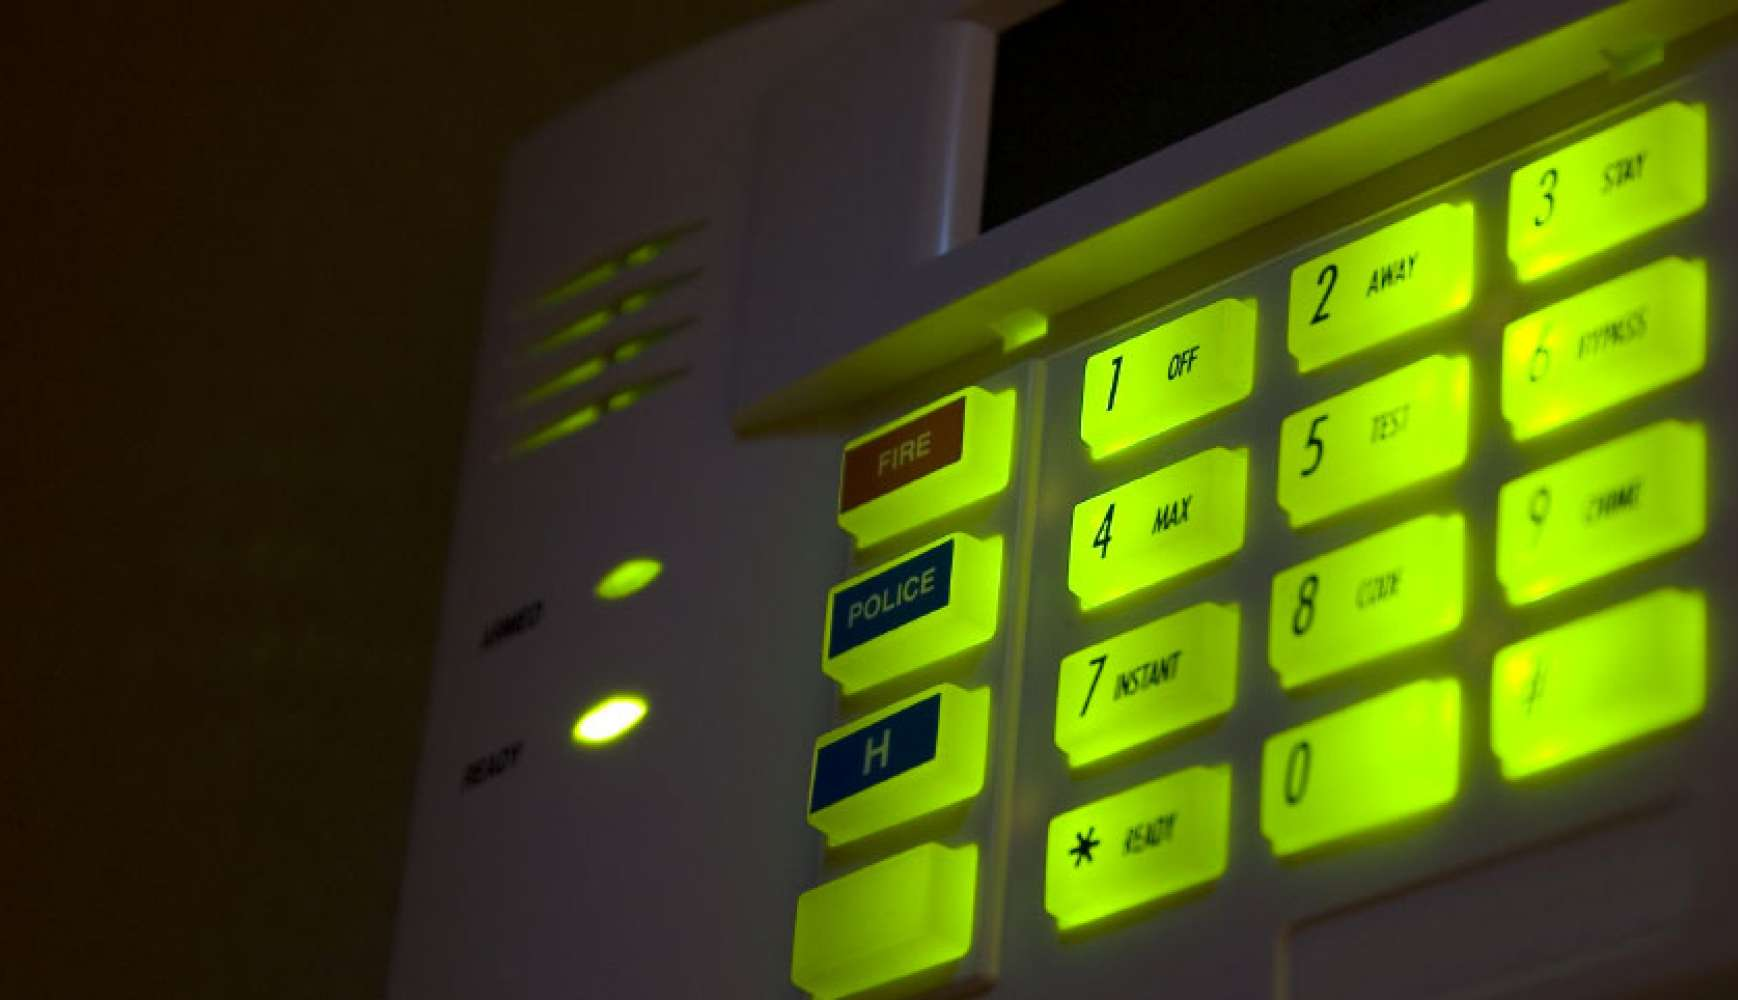 Security systems aloadofball Gallery